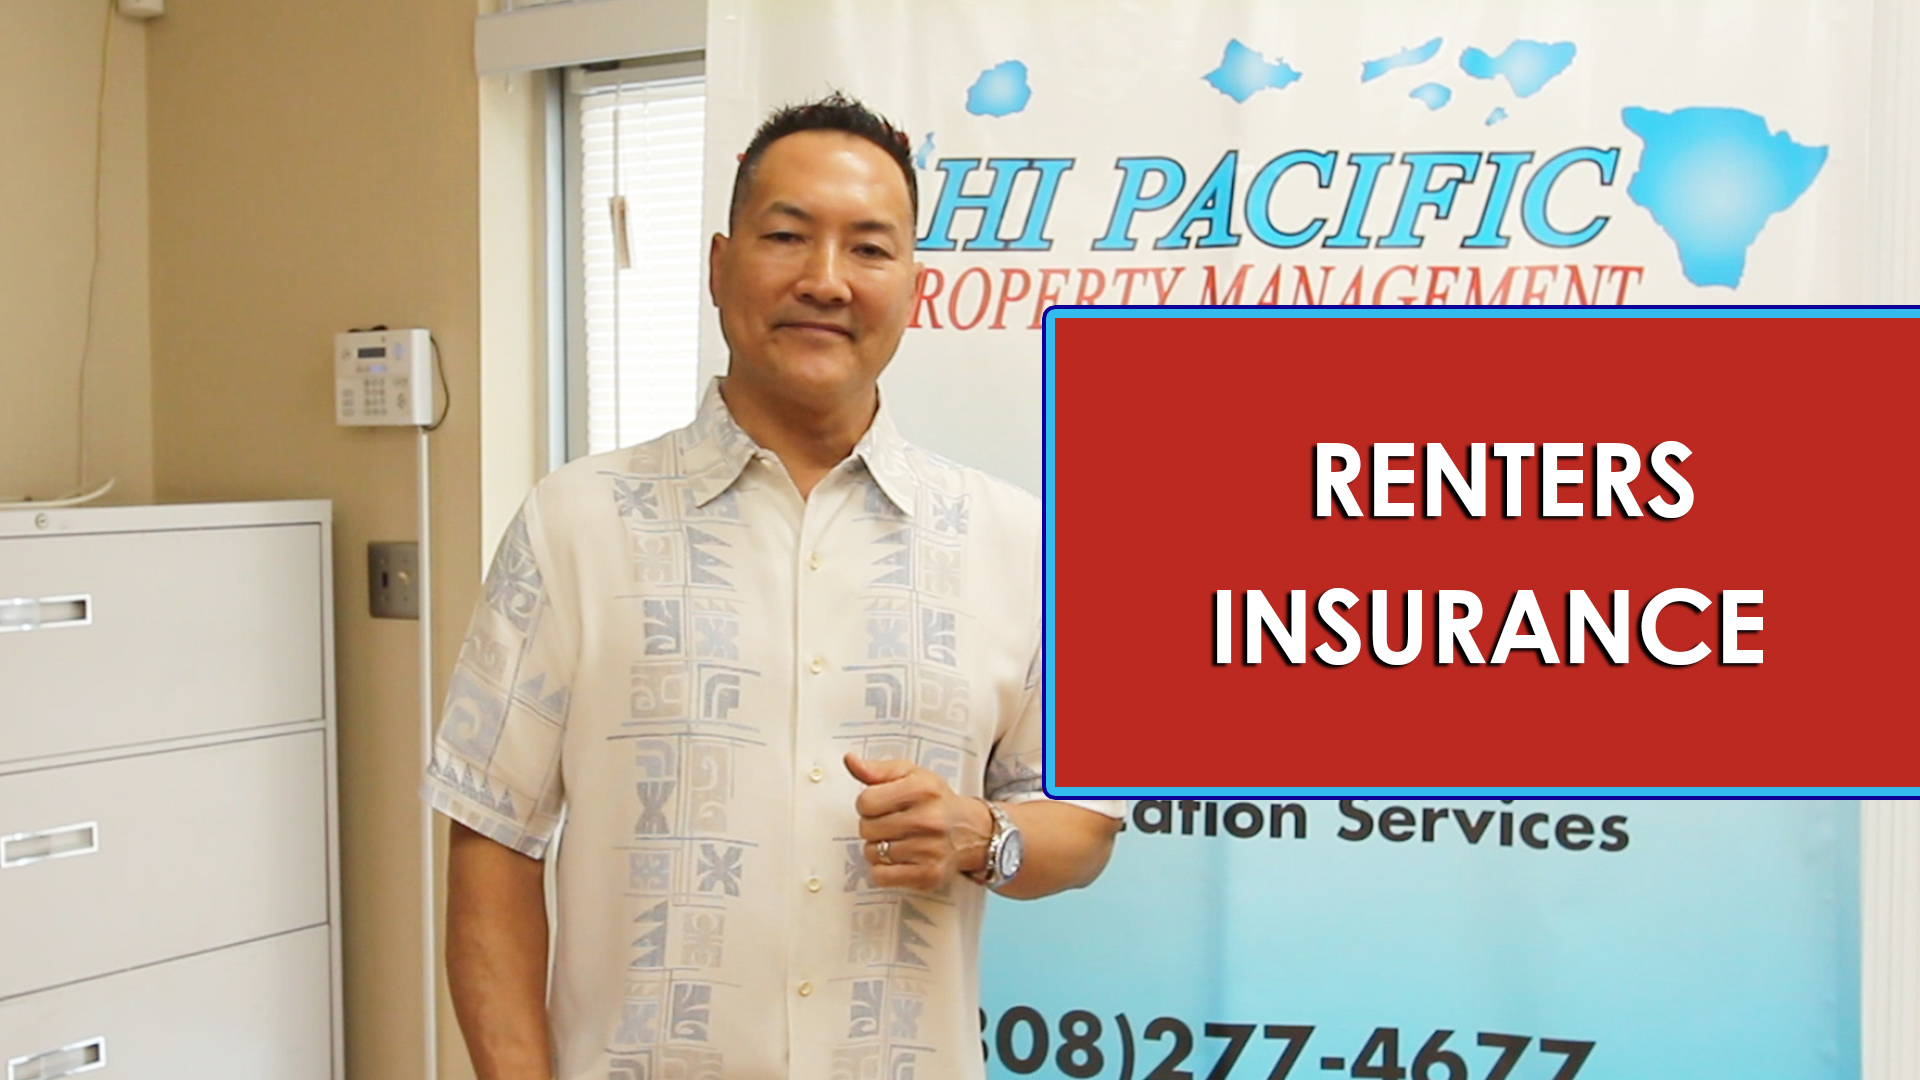 Why Renters Insurance Benefits Tenants and Property Owners